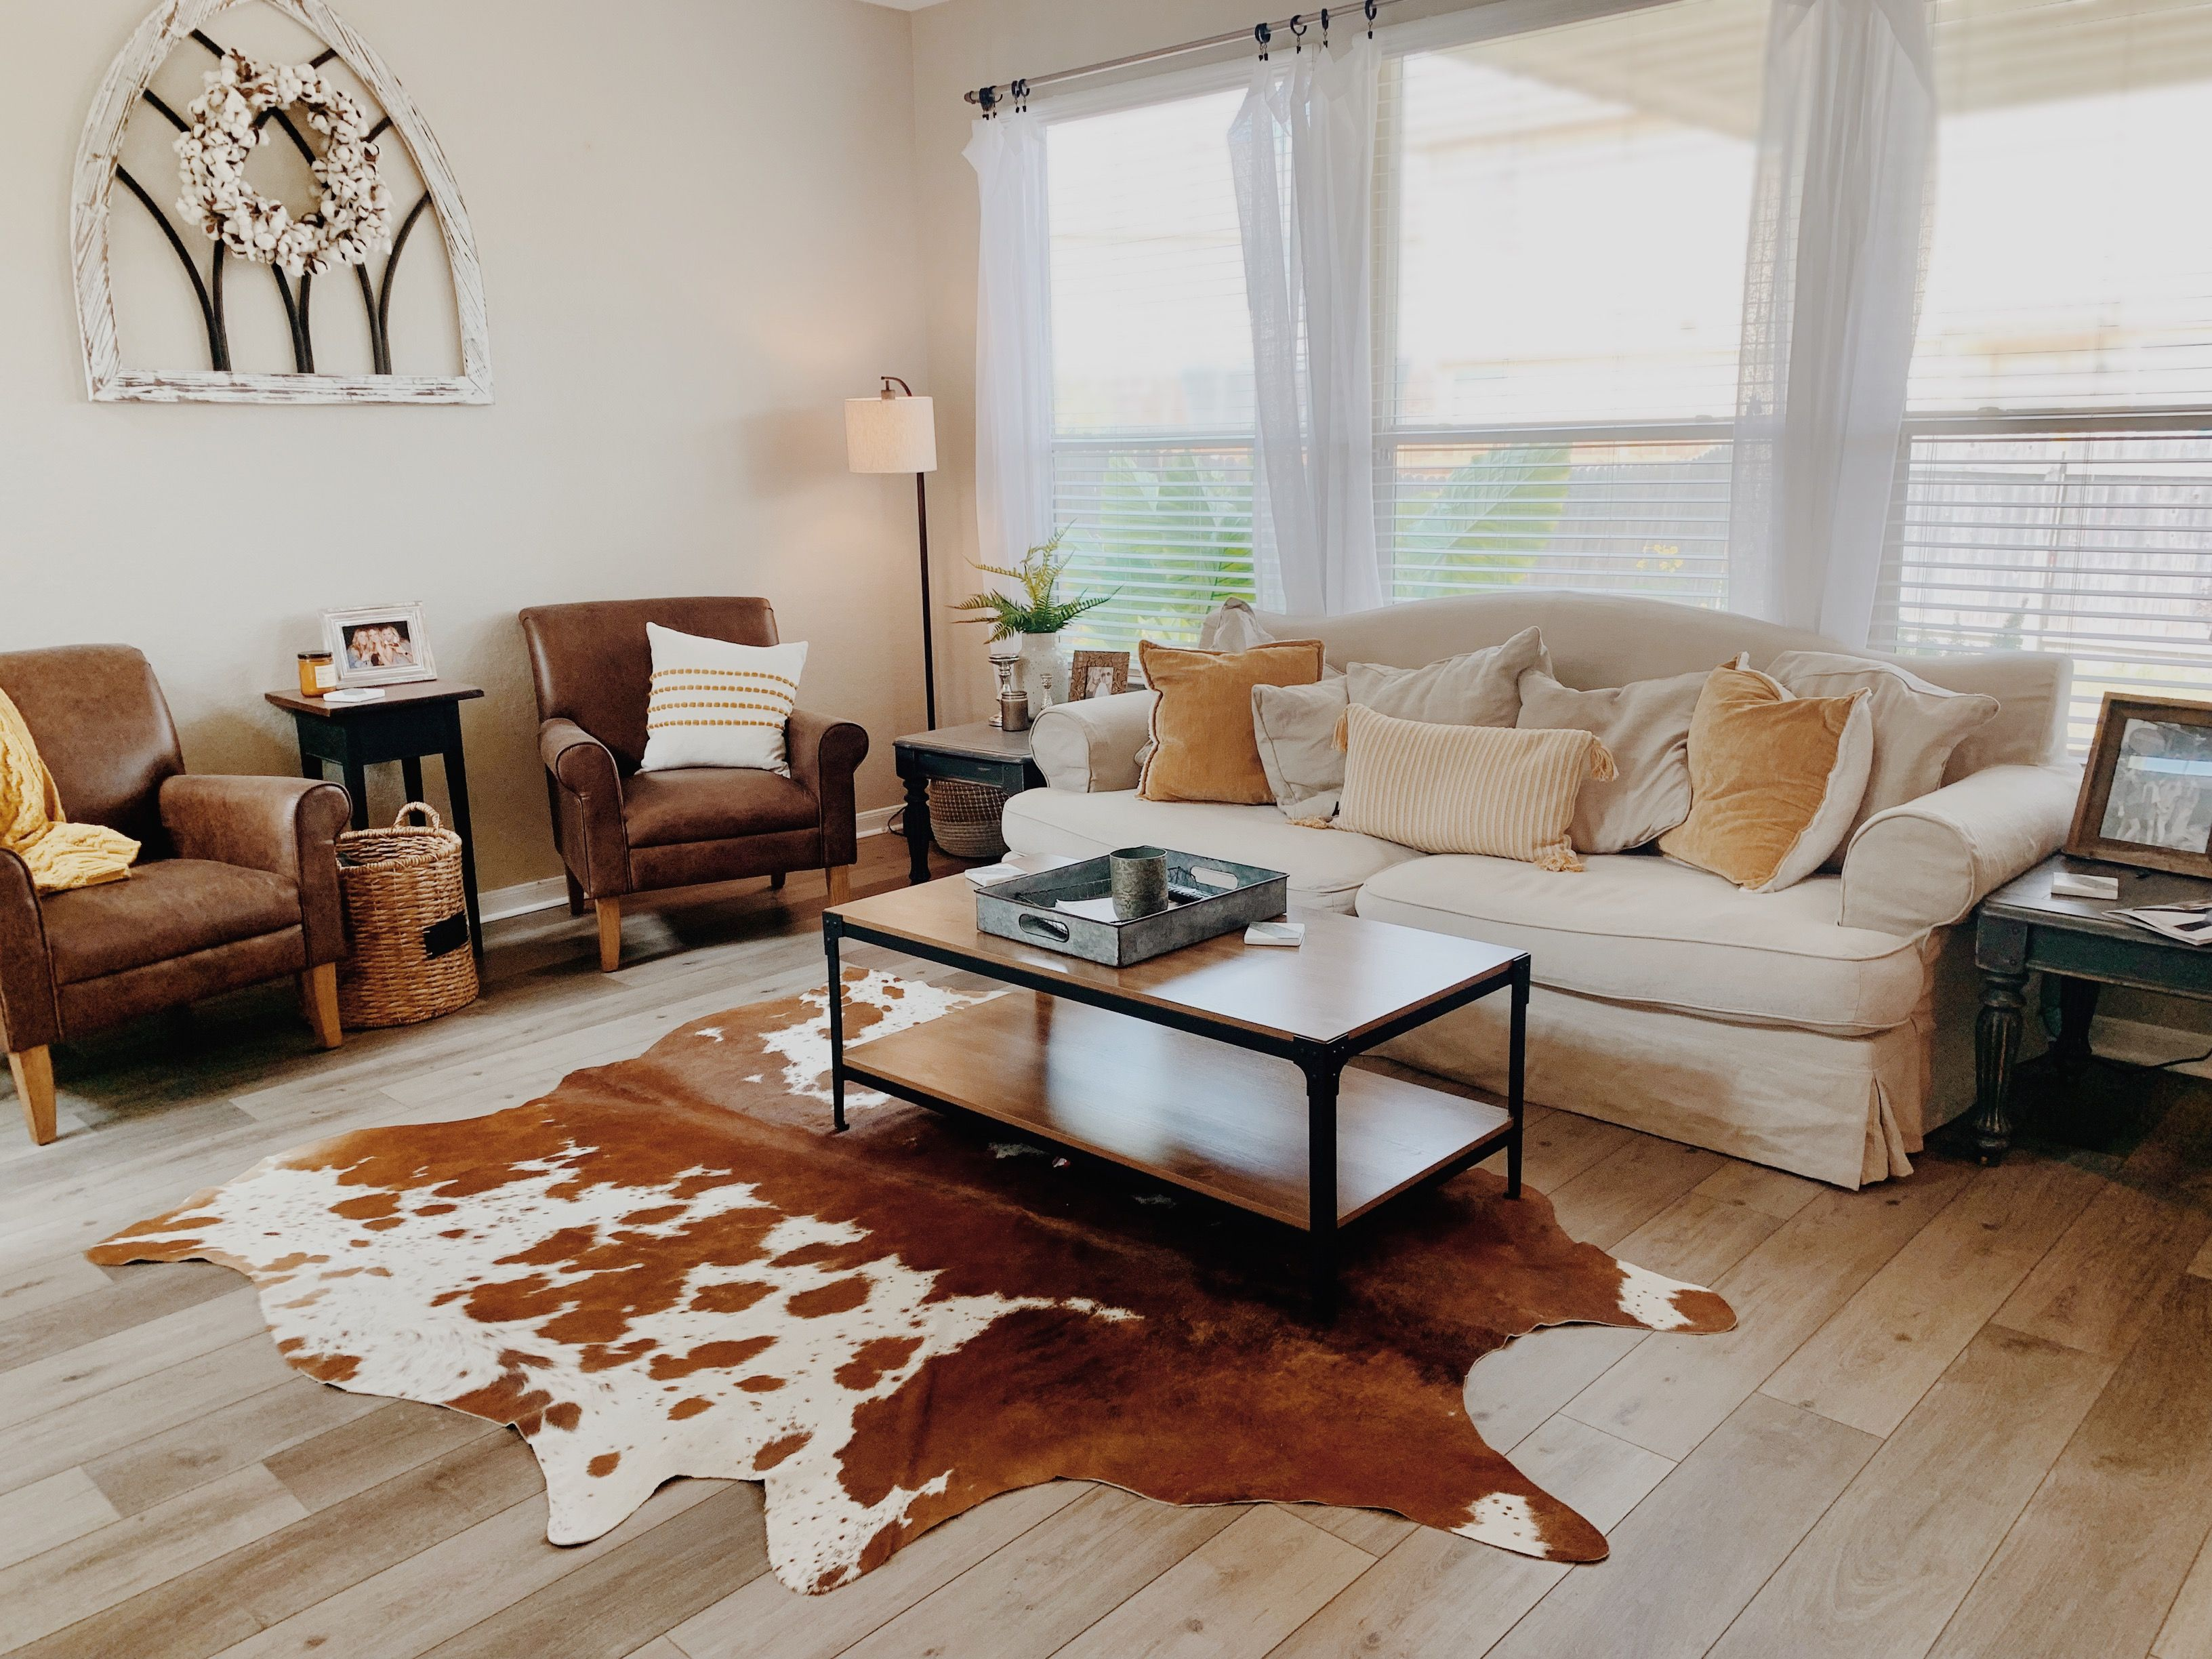 Modern Farmhouse With Mustard Accents Cowhide Rug Living Room Rugs In Living Room Cowhide Rug Living Room Modern